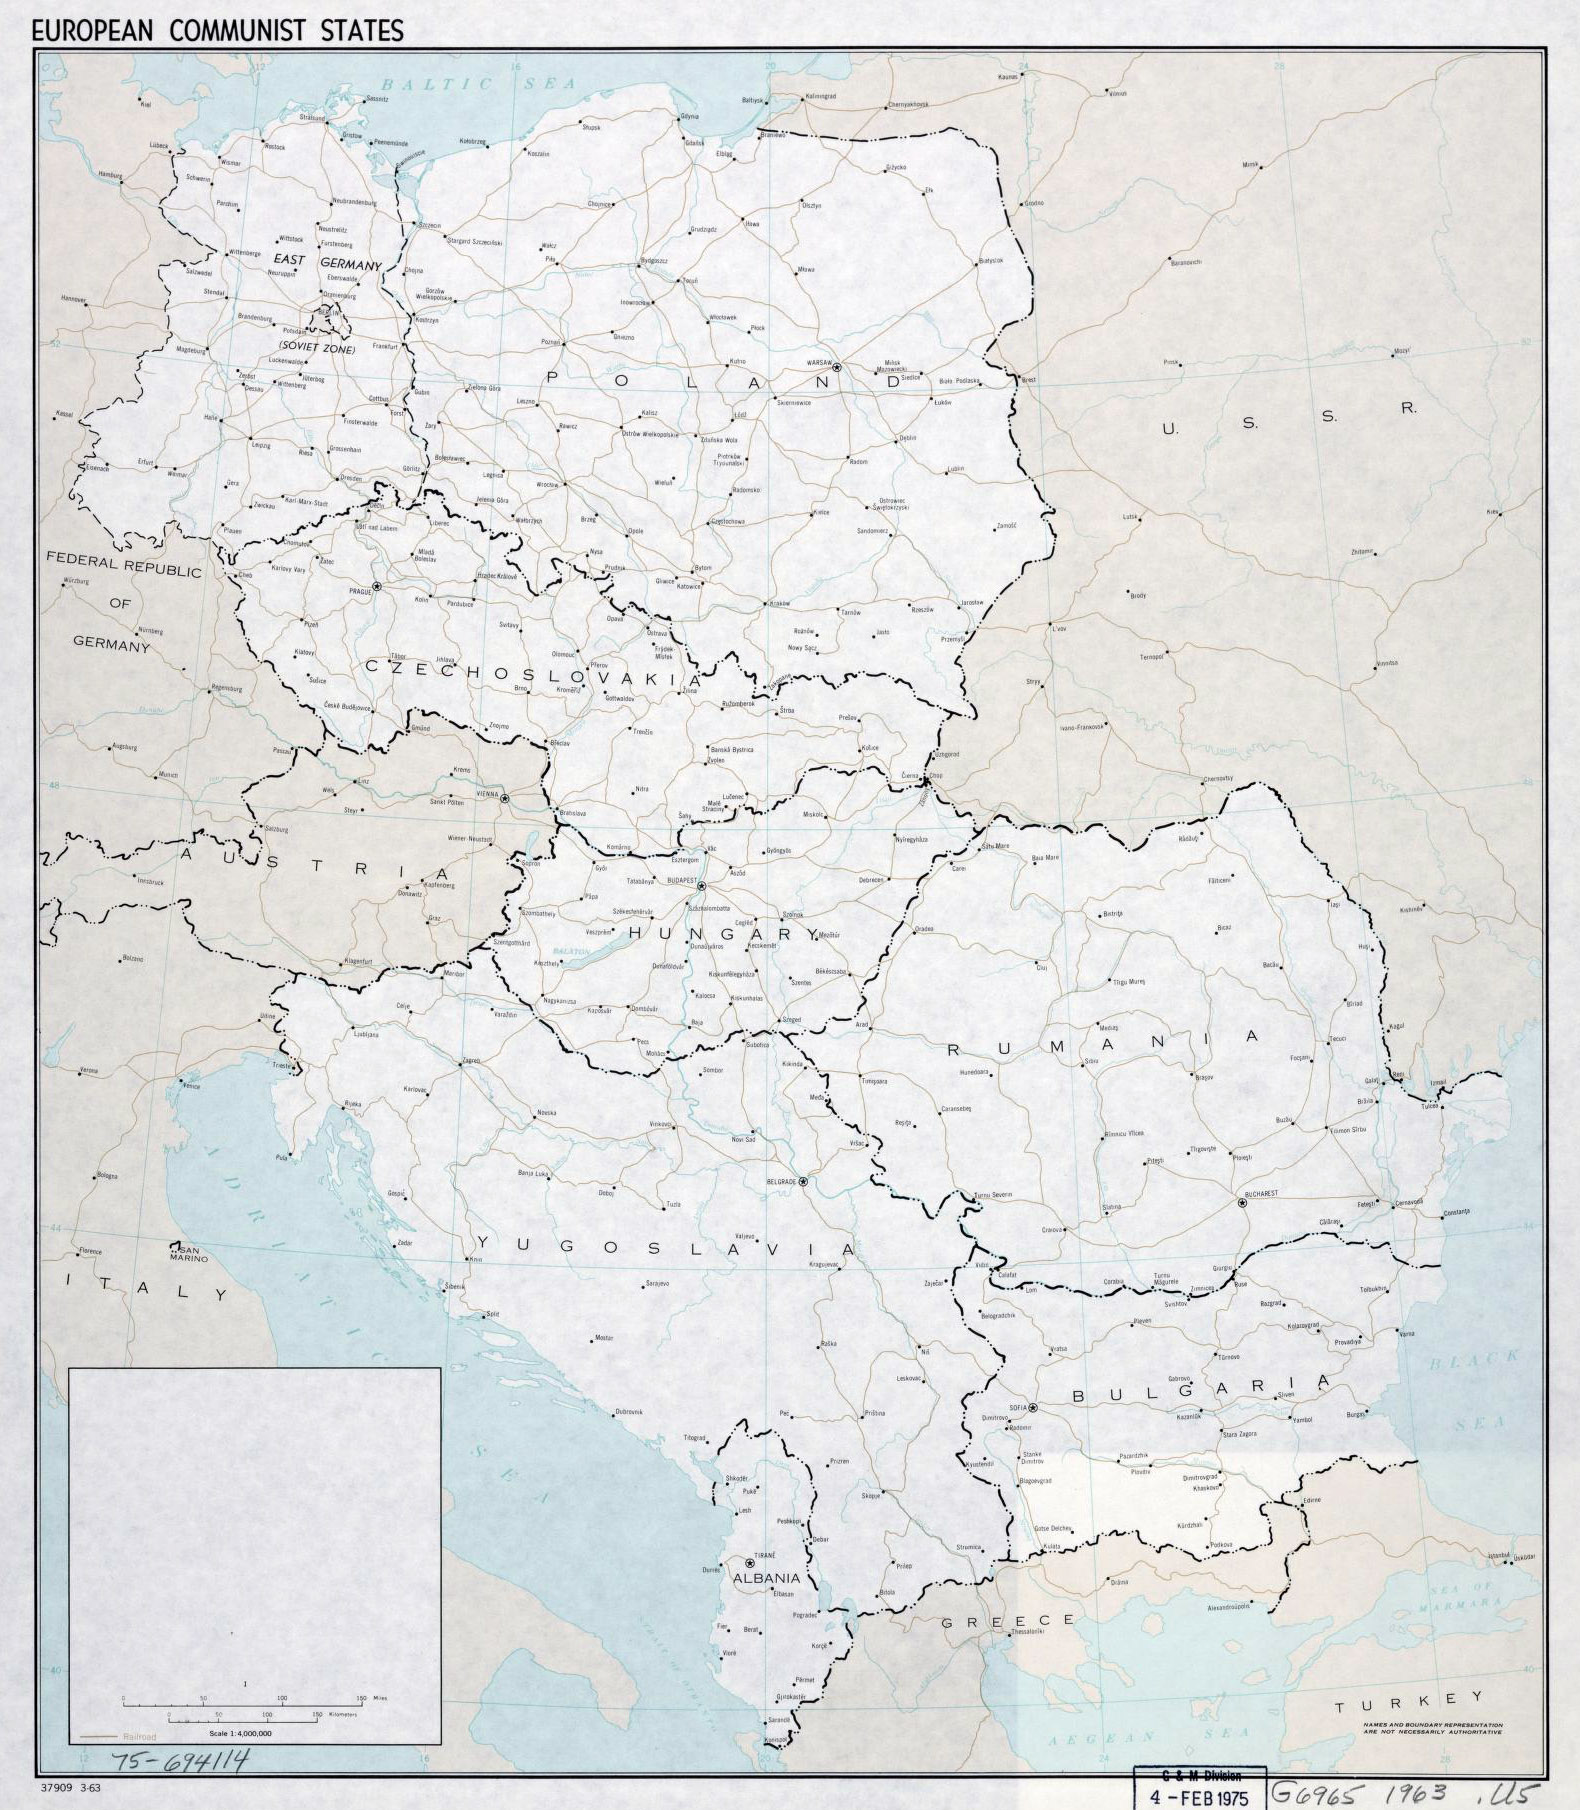 Other maps of europe maps of central europe eastern europe detailed old map of european communist states 1963 sciox Images